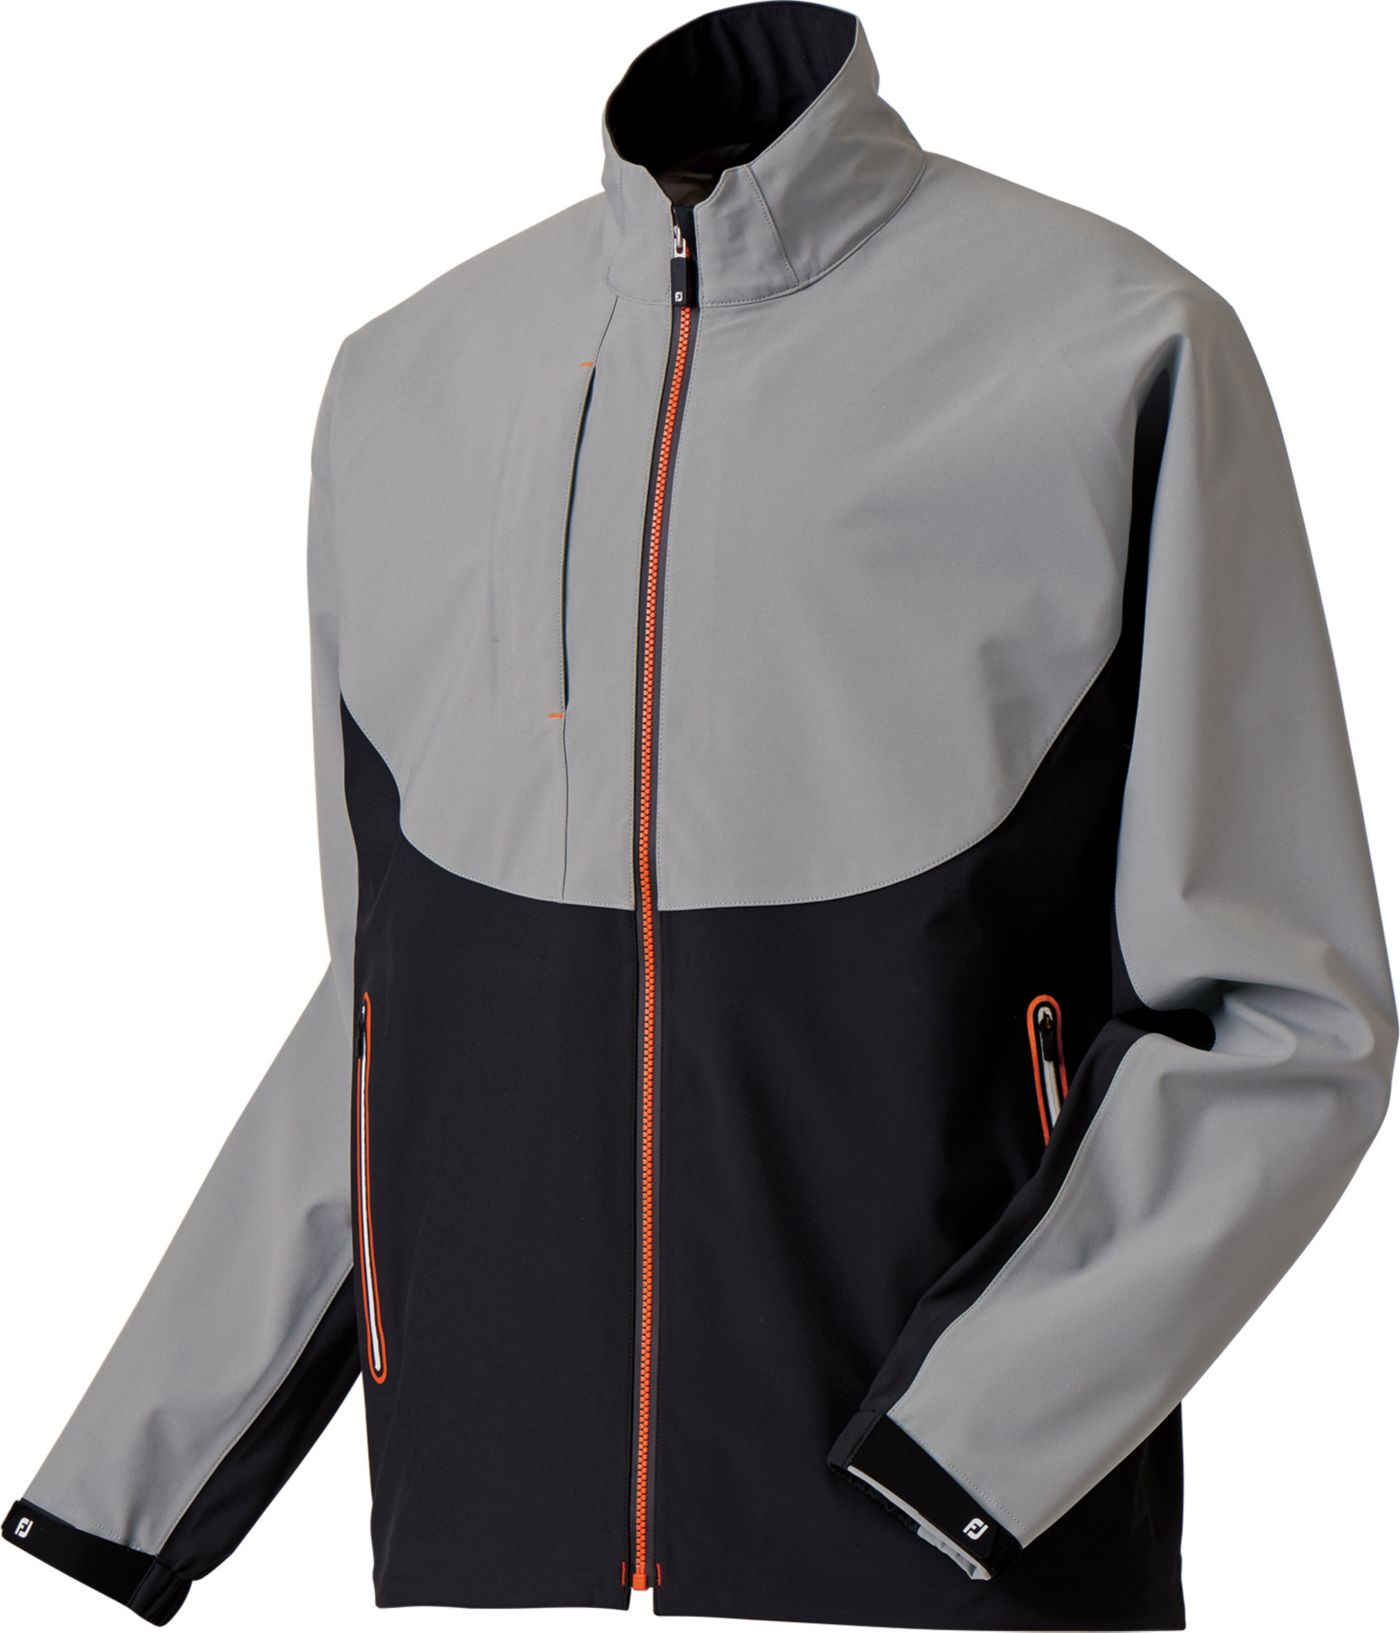 FootJoy DryJoys Tour LTS Rain Jacket